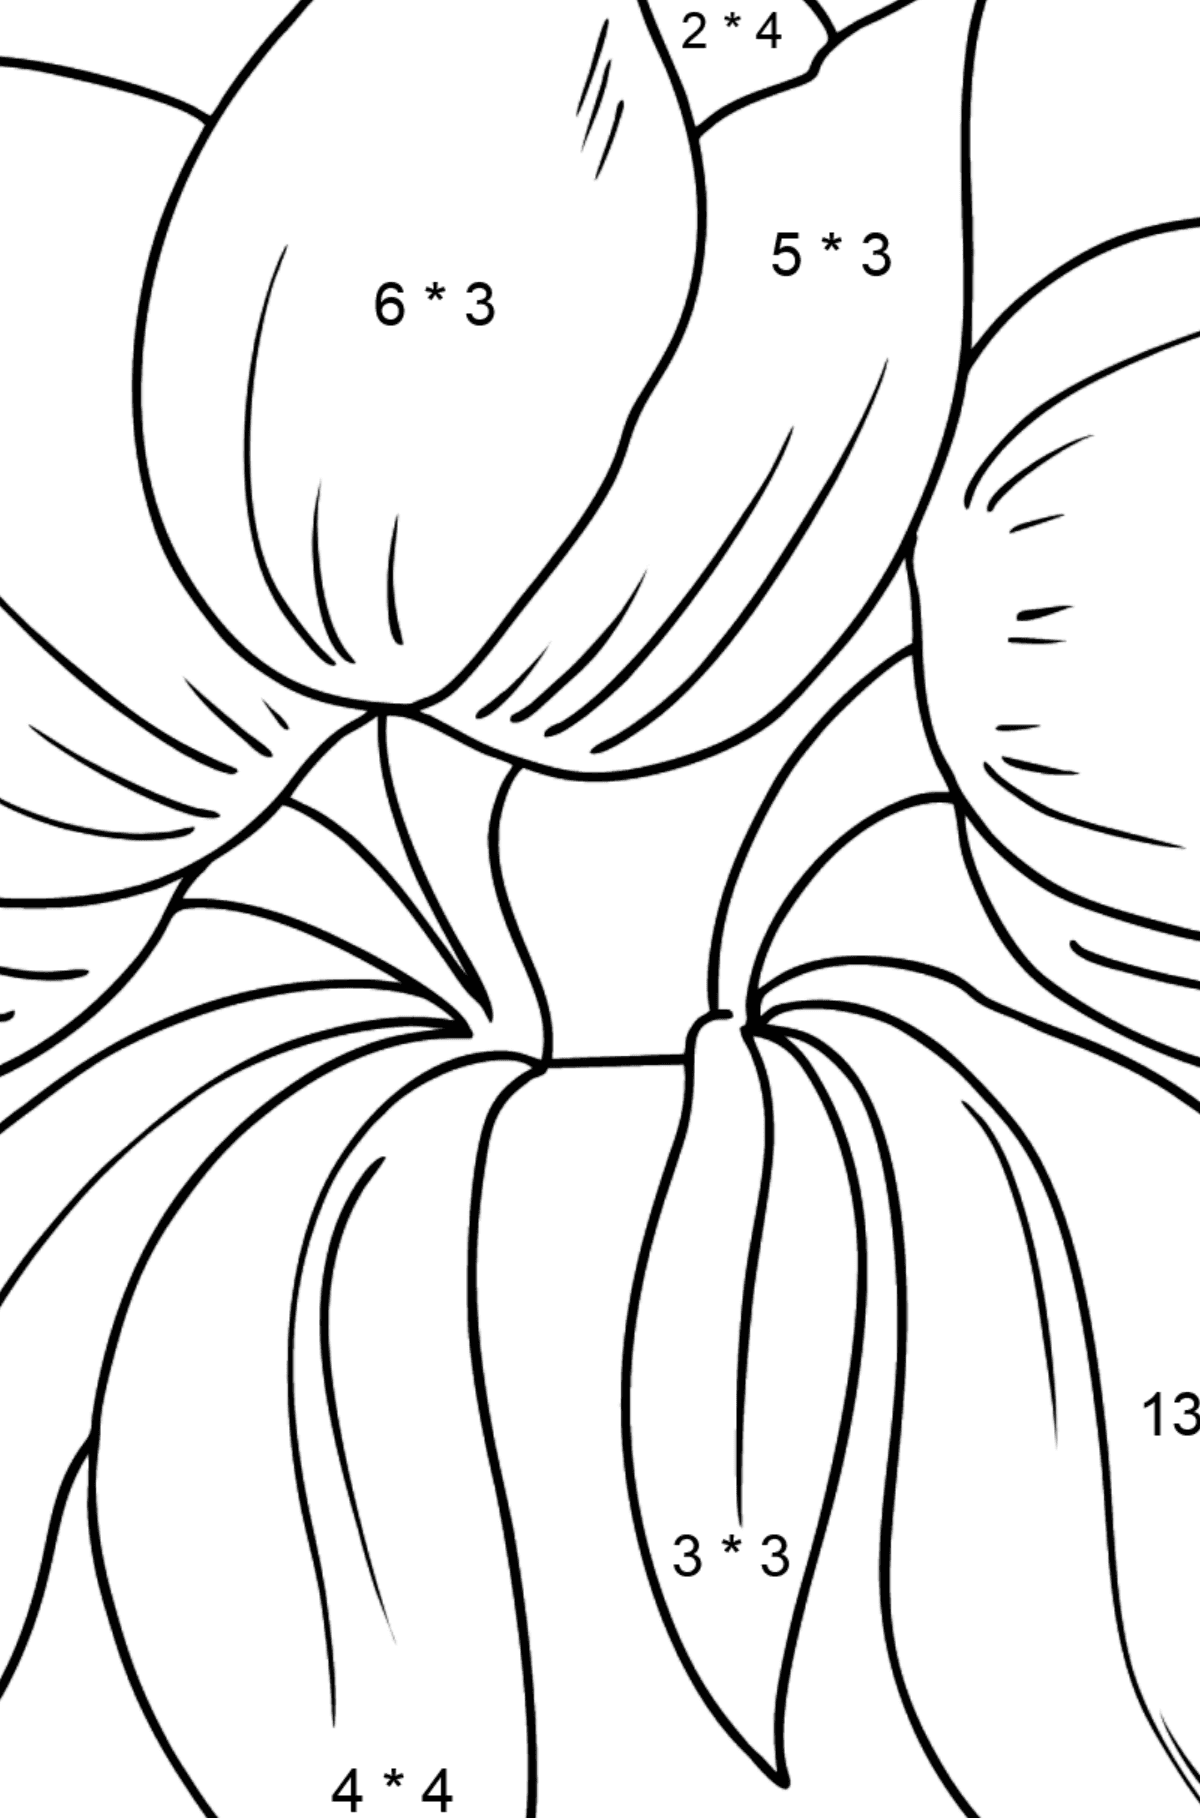 Flower Coloring Page - Tulips - Math Coloring - Multiplication for Kids